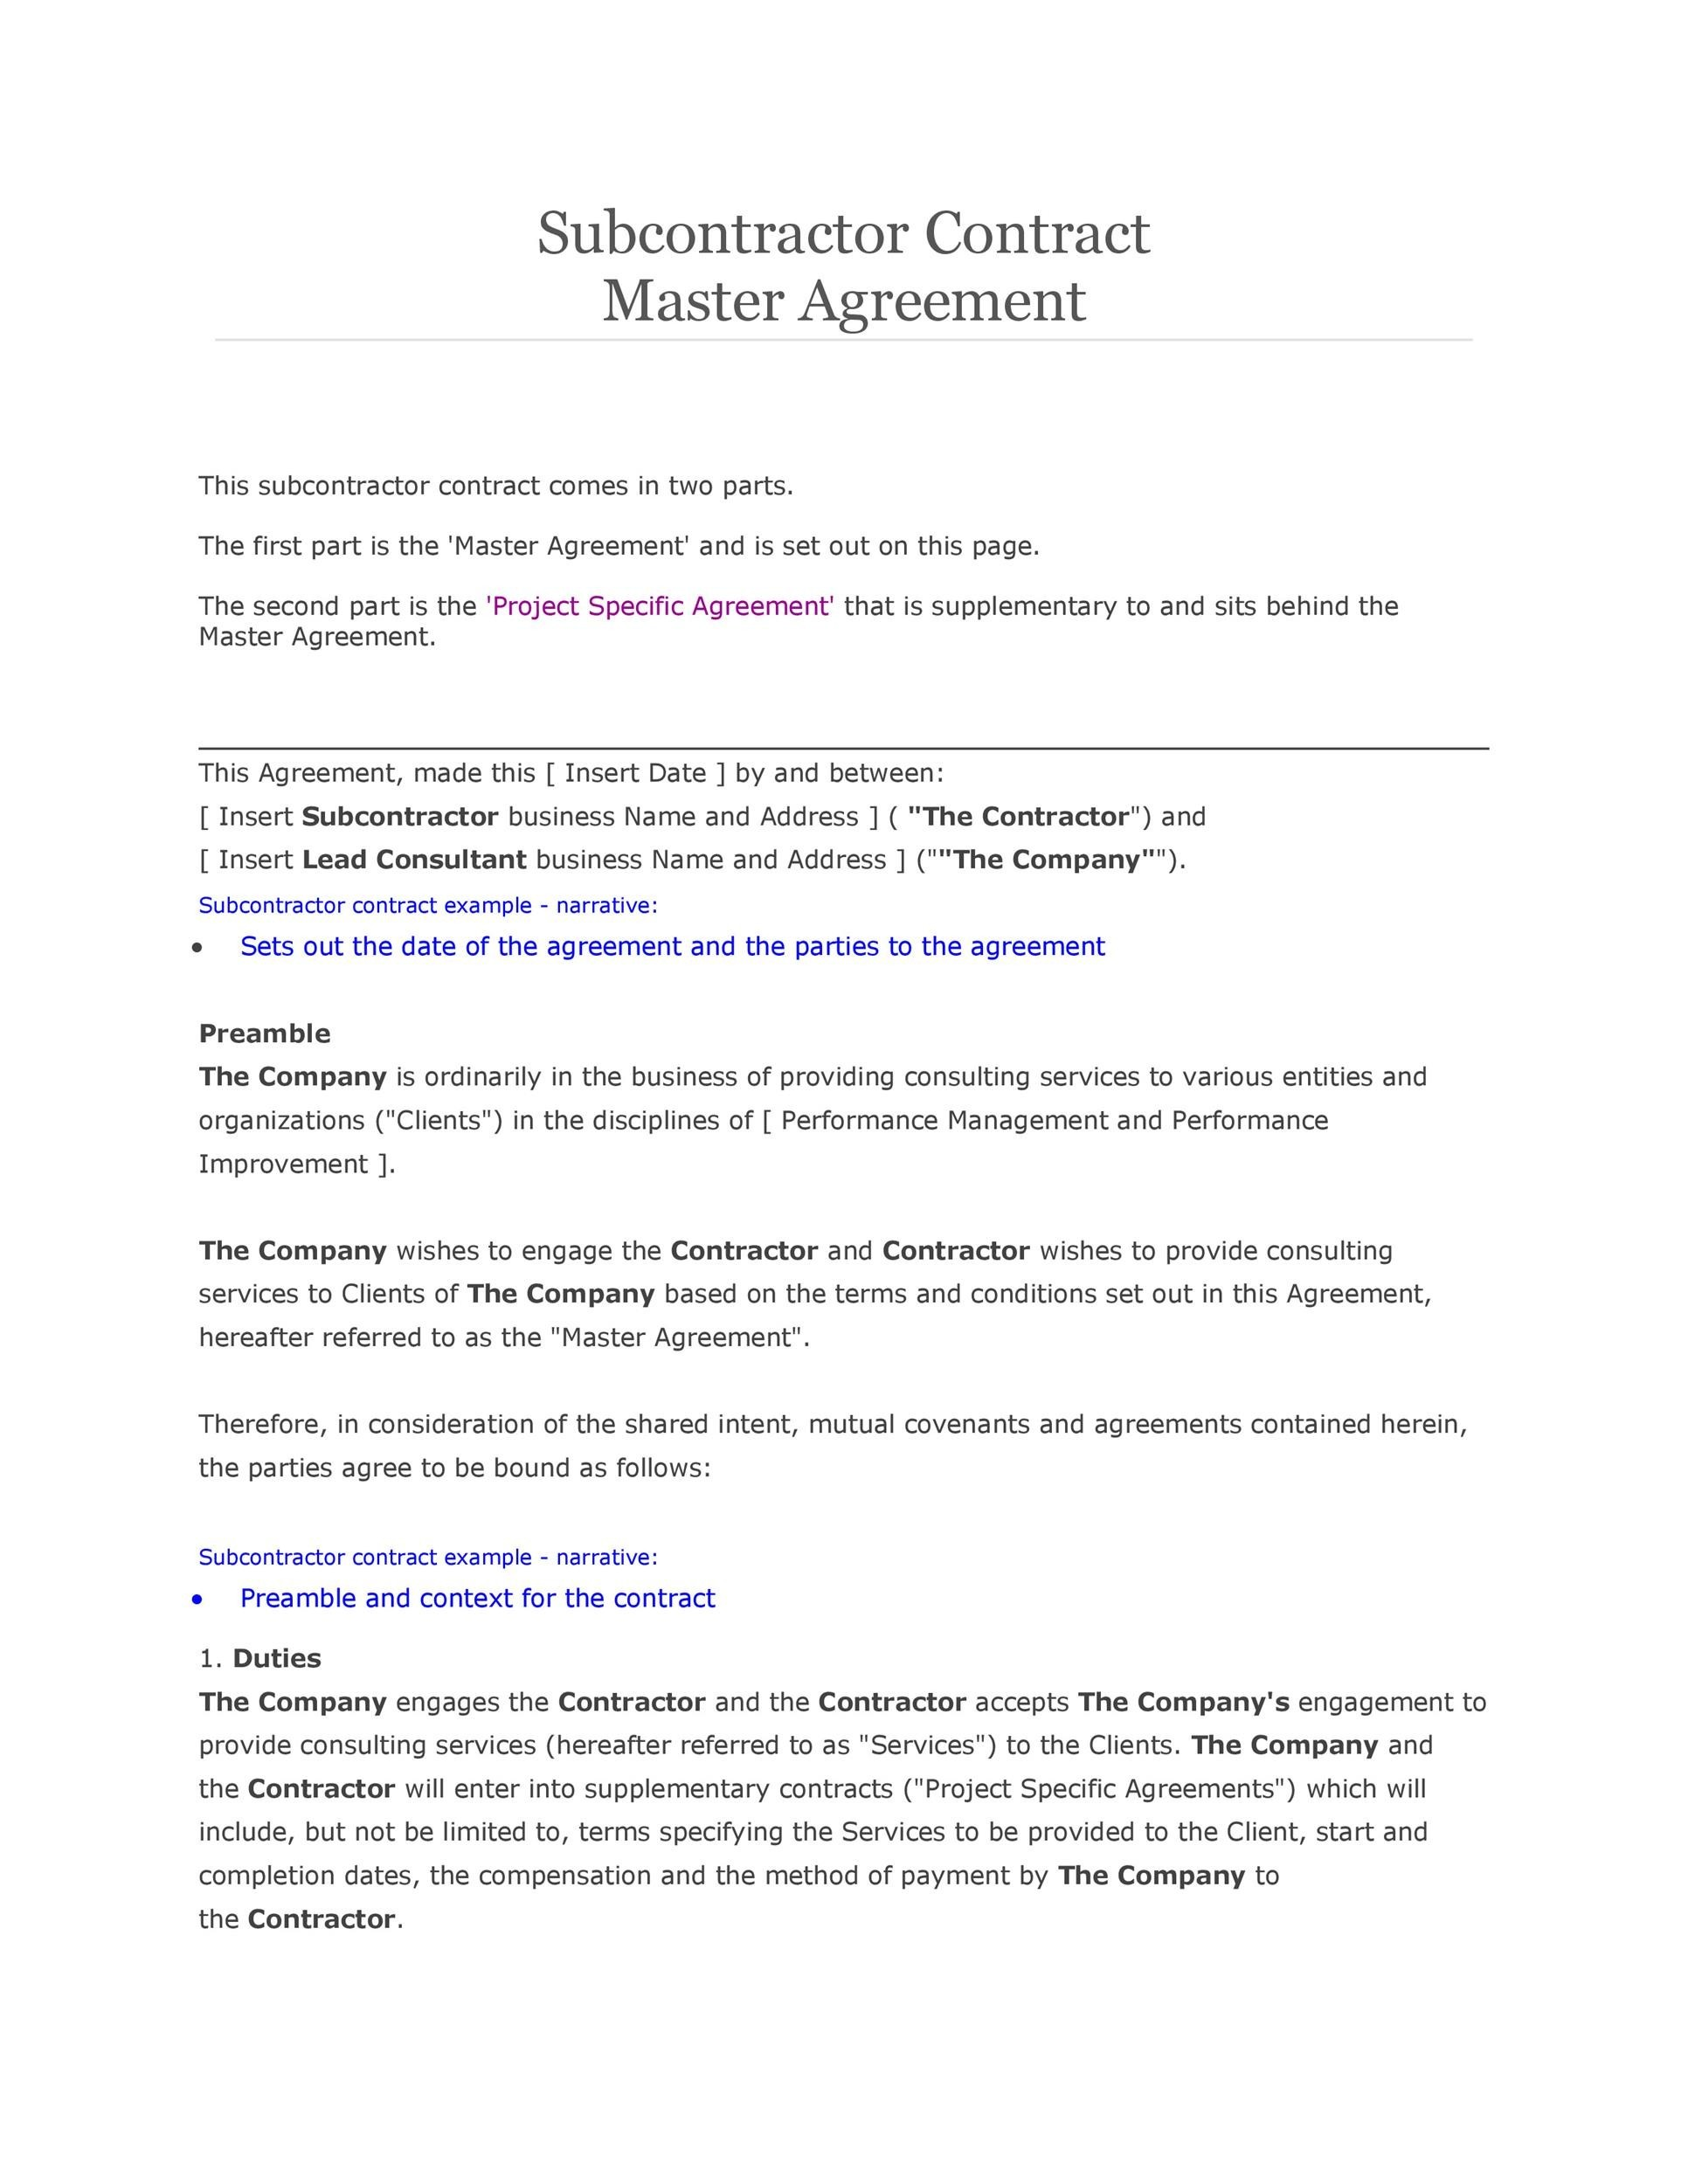 Need A Subcontractor Agreement Free Templates HERE - Concrete contractor contract template